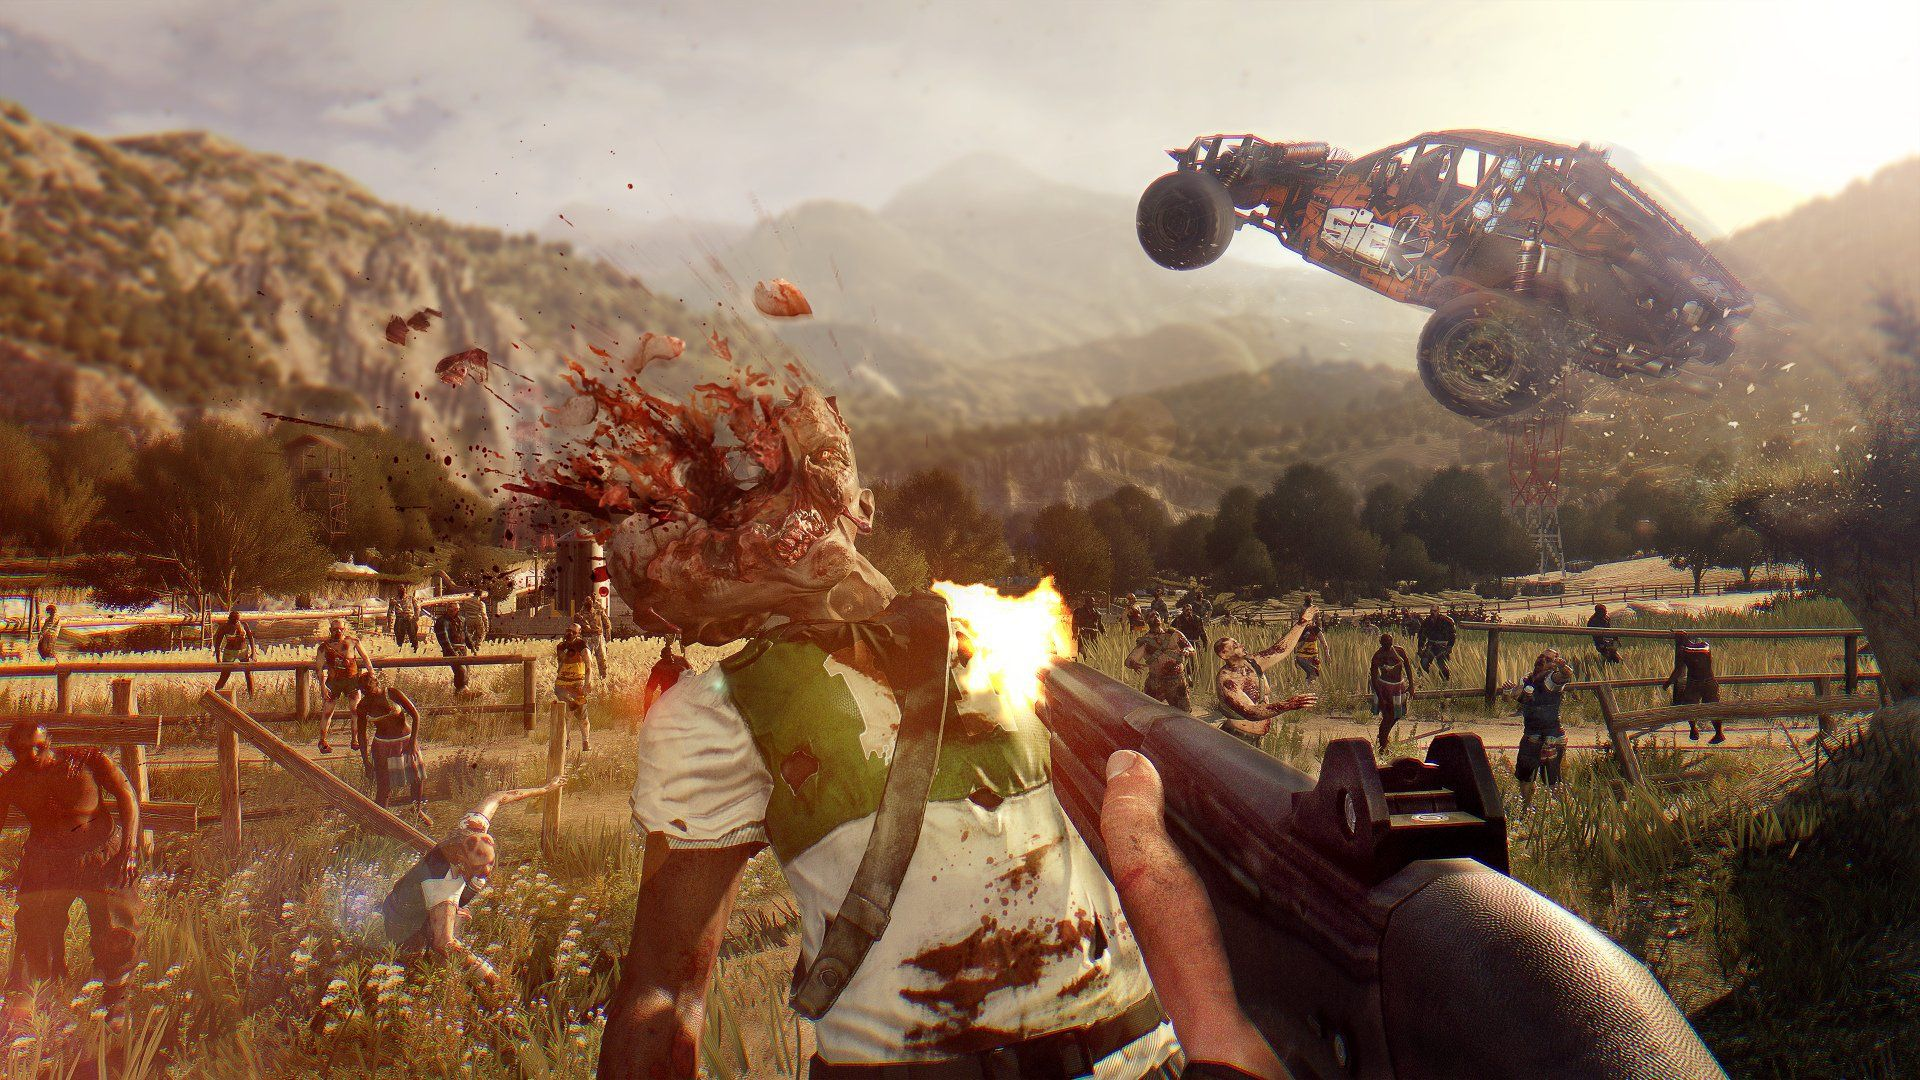 Dying Light HD Wallpapers Backgrounds Wallpaper 1366x768 The Following 45